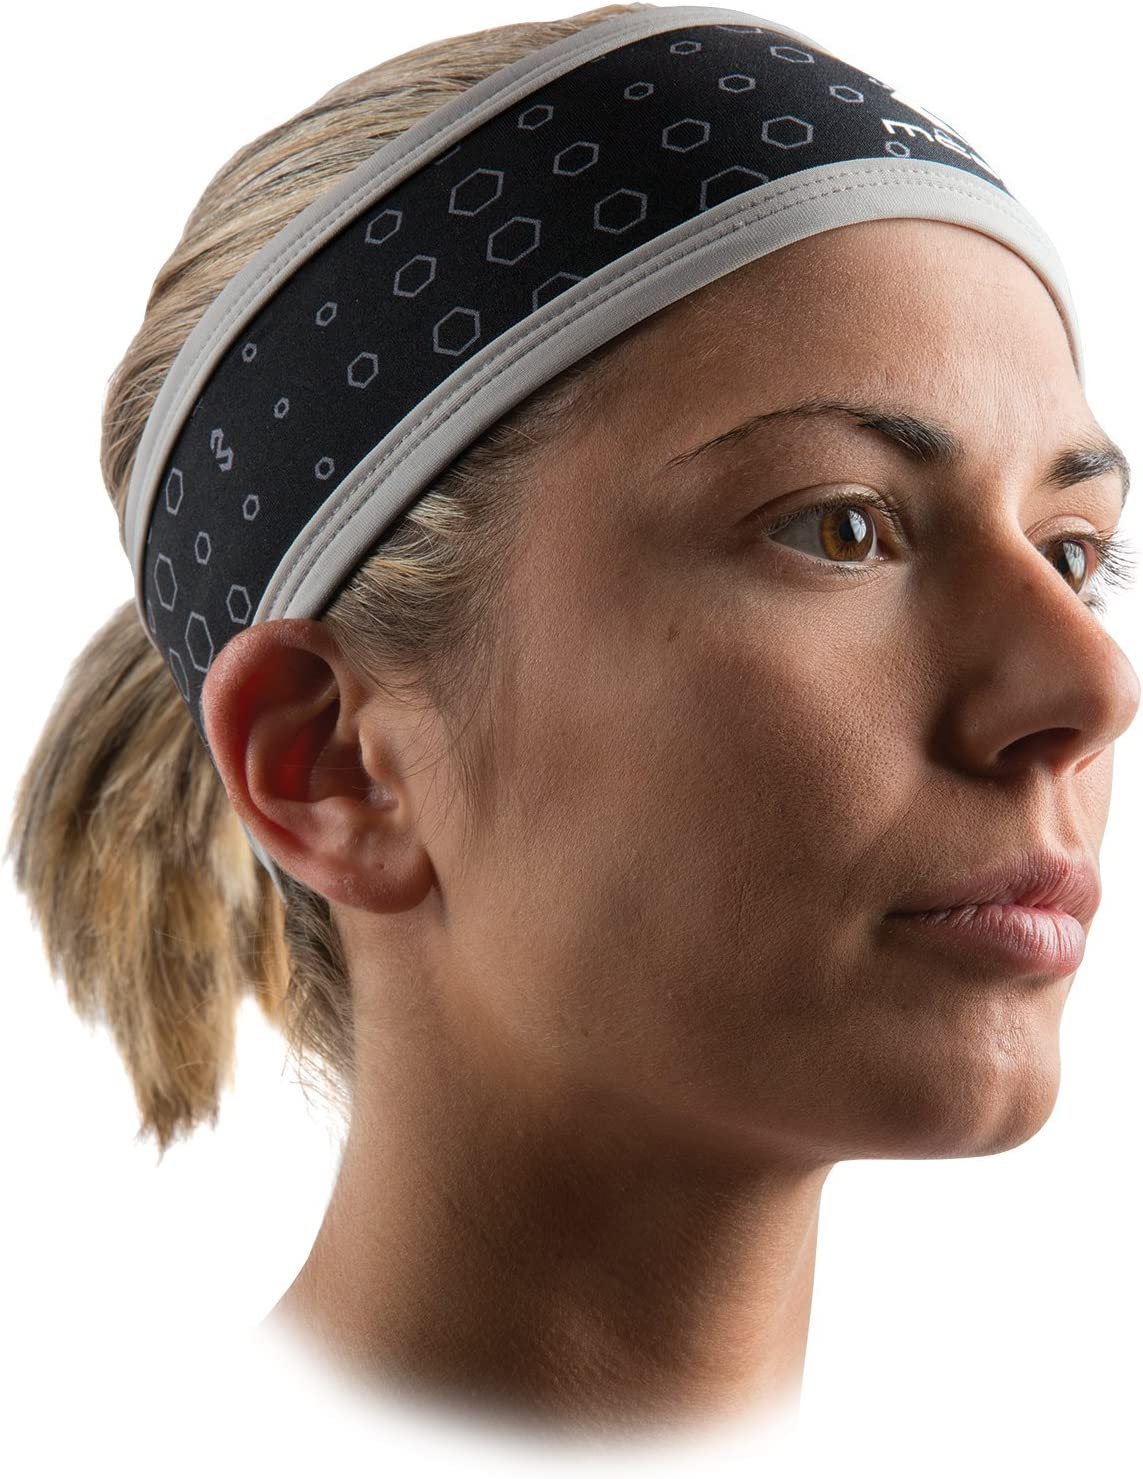 McDavid 6582 Ucool Headband Cooling Head Sweatband with 50+ UV Sun Protection, Black, One Size